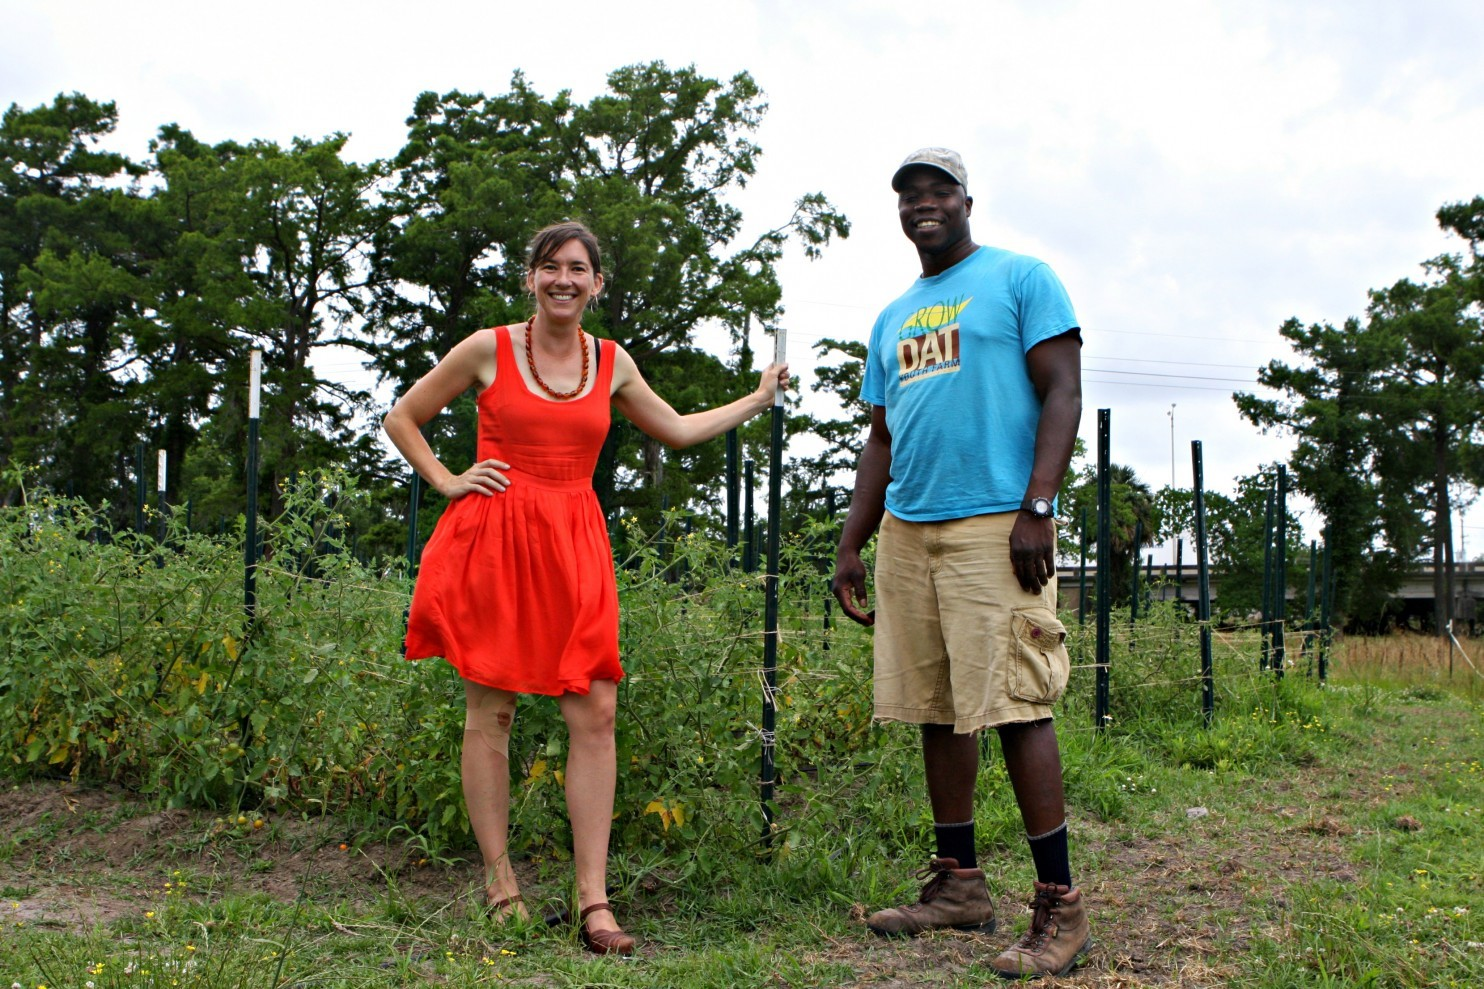 row Dat Youth Farm founder Johanna Gilligan